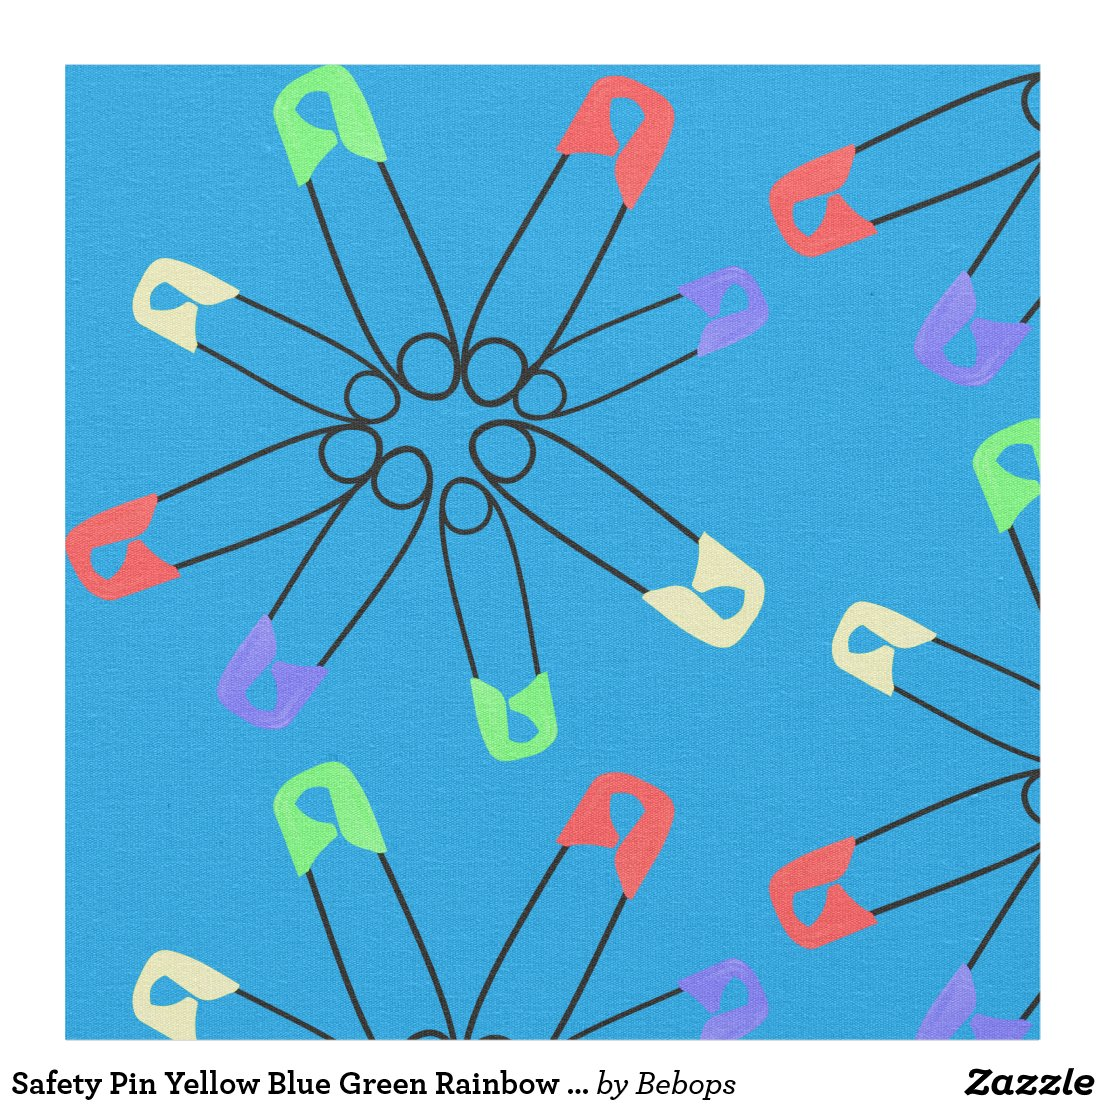 Safety Pin Yellow Blue Green Rainbow Solidarity Fabric